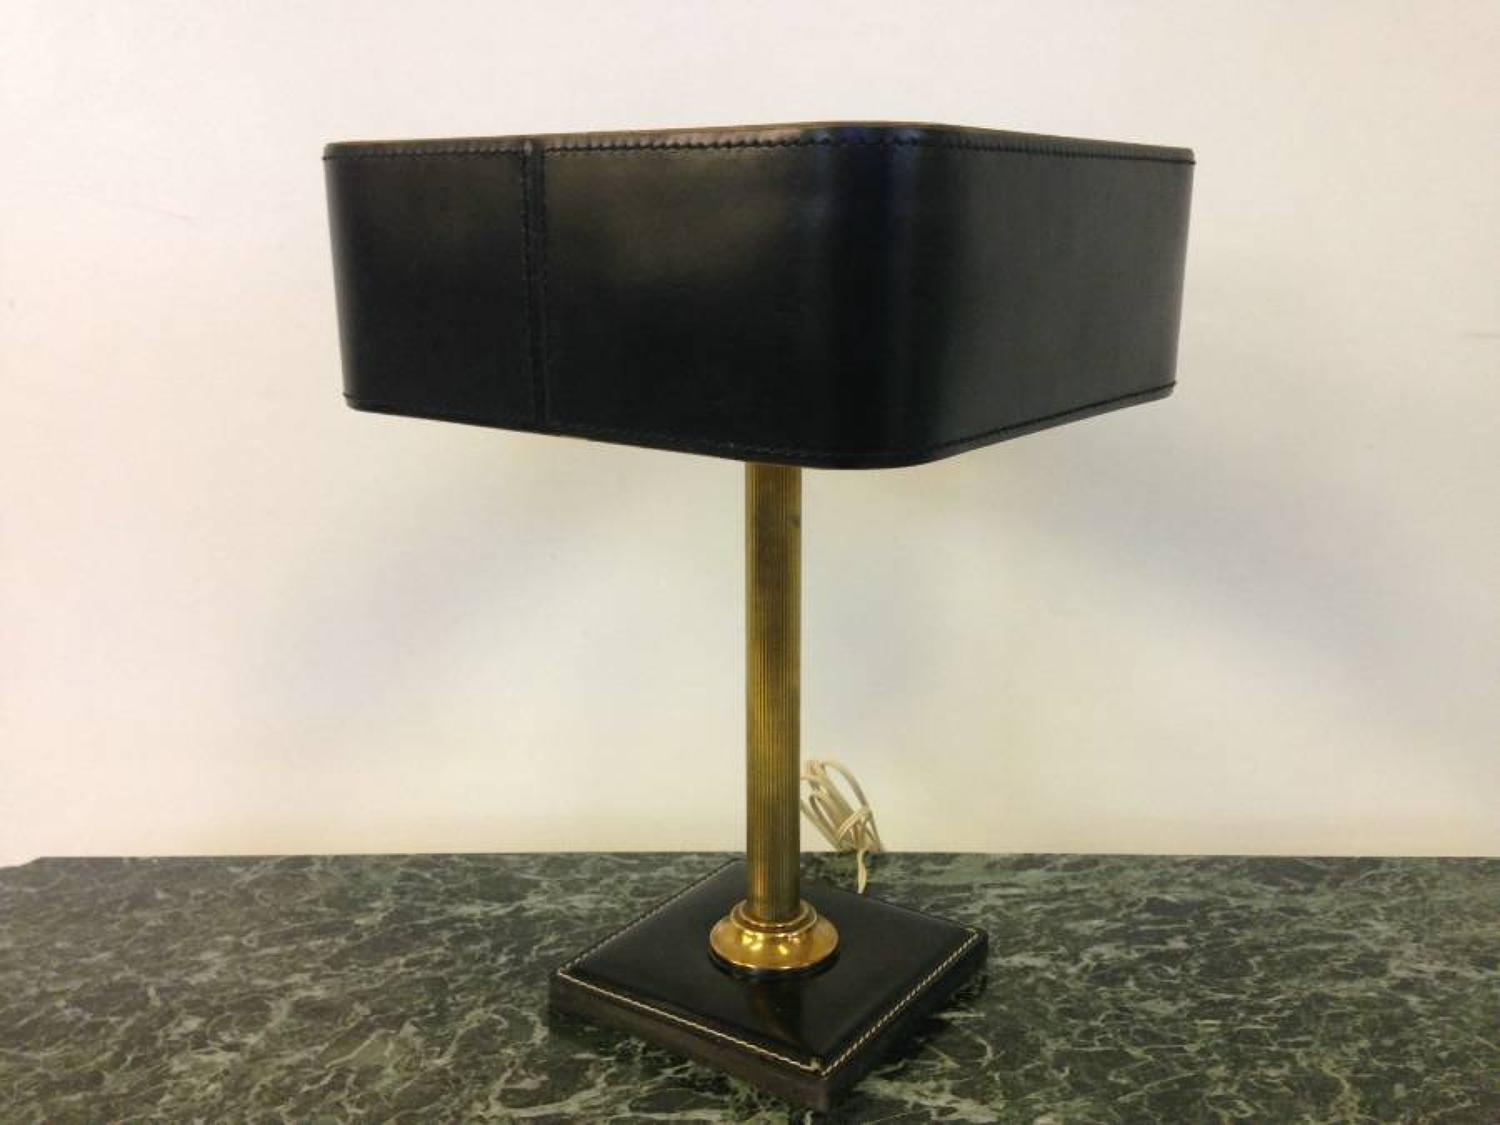 Brass and stitched leather lamp by Jaques Adnet